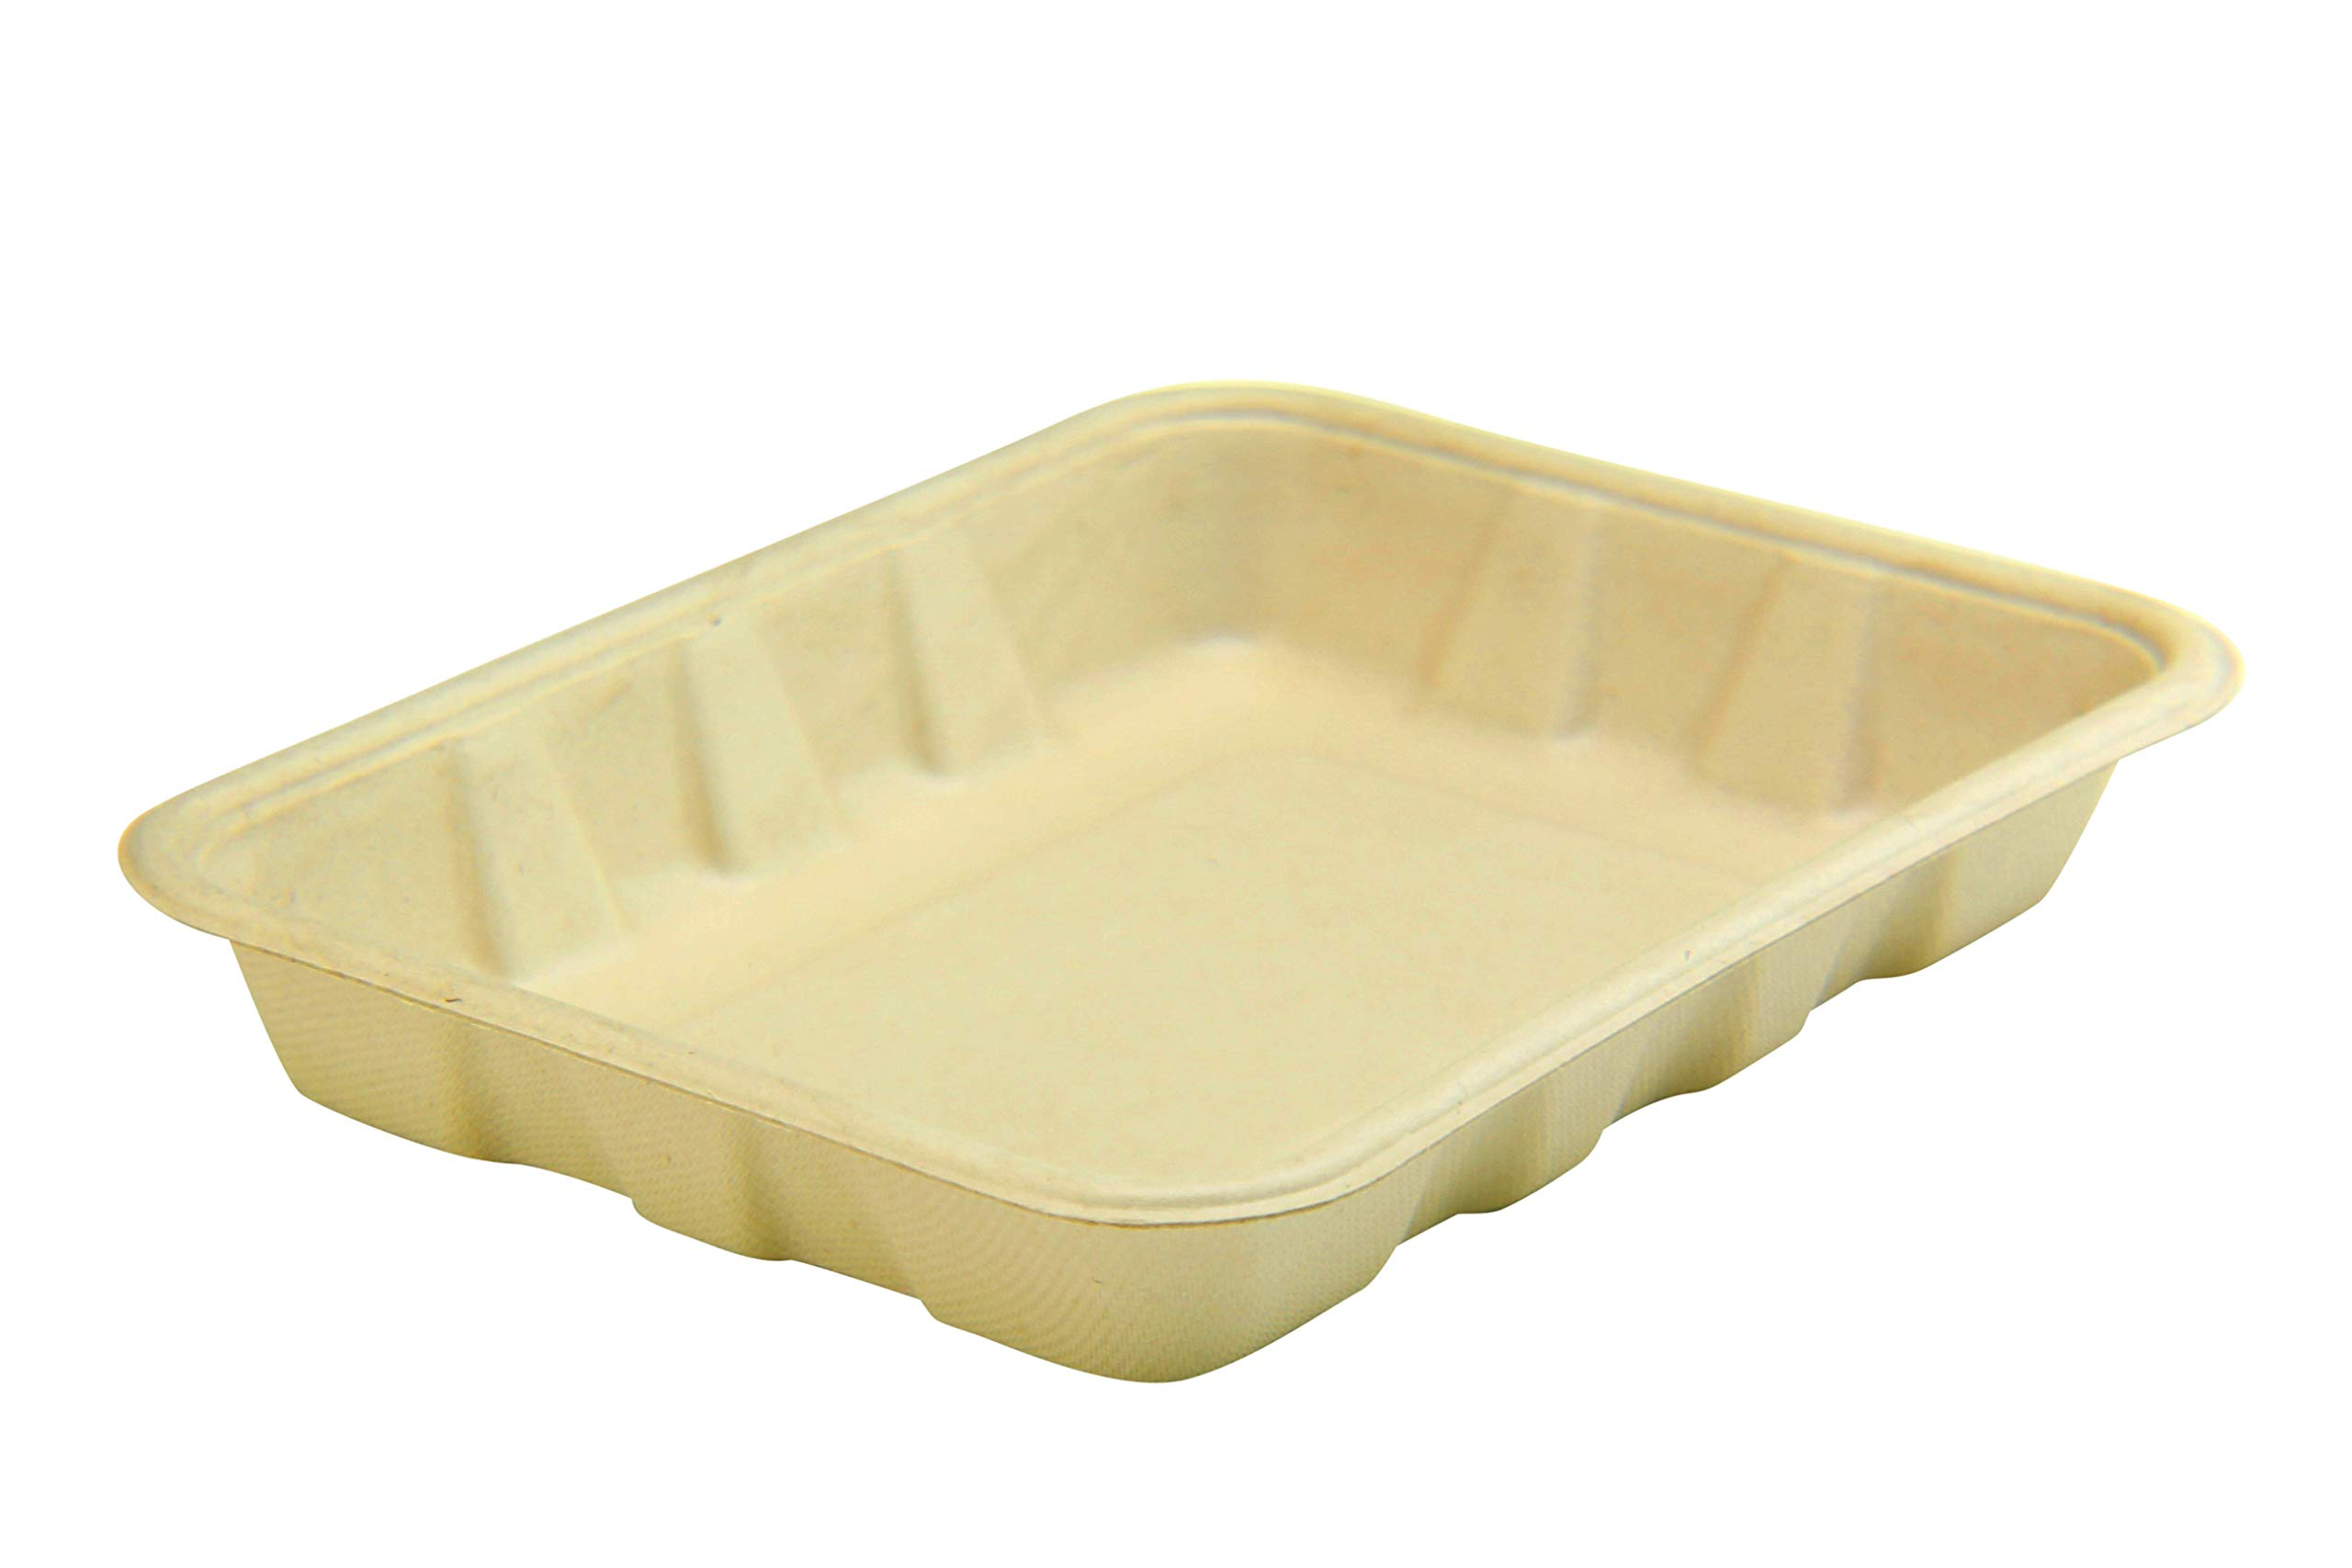 [100 COUNT] 22oz Compostable Eco Friendly Container Trays - Deep Containers made from Plant Fibers for Meal Prep Dinnerware Plates Catering Bento Boxes Takeout 100% by products